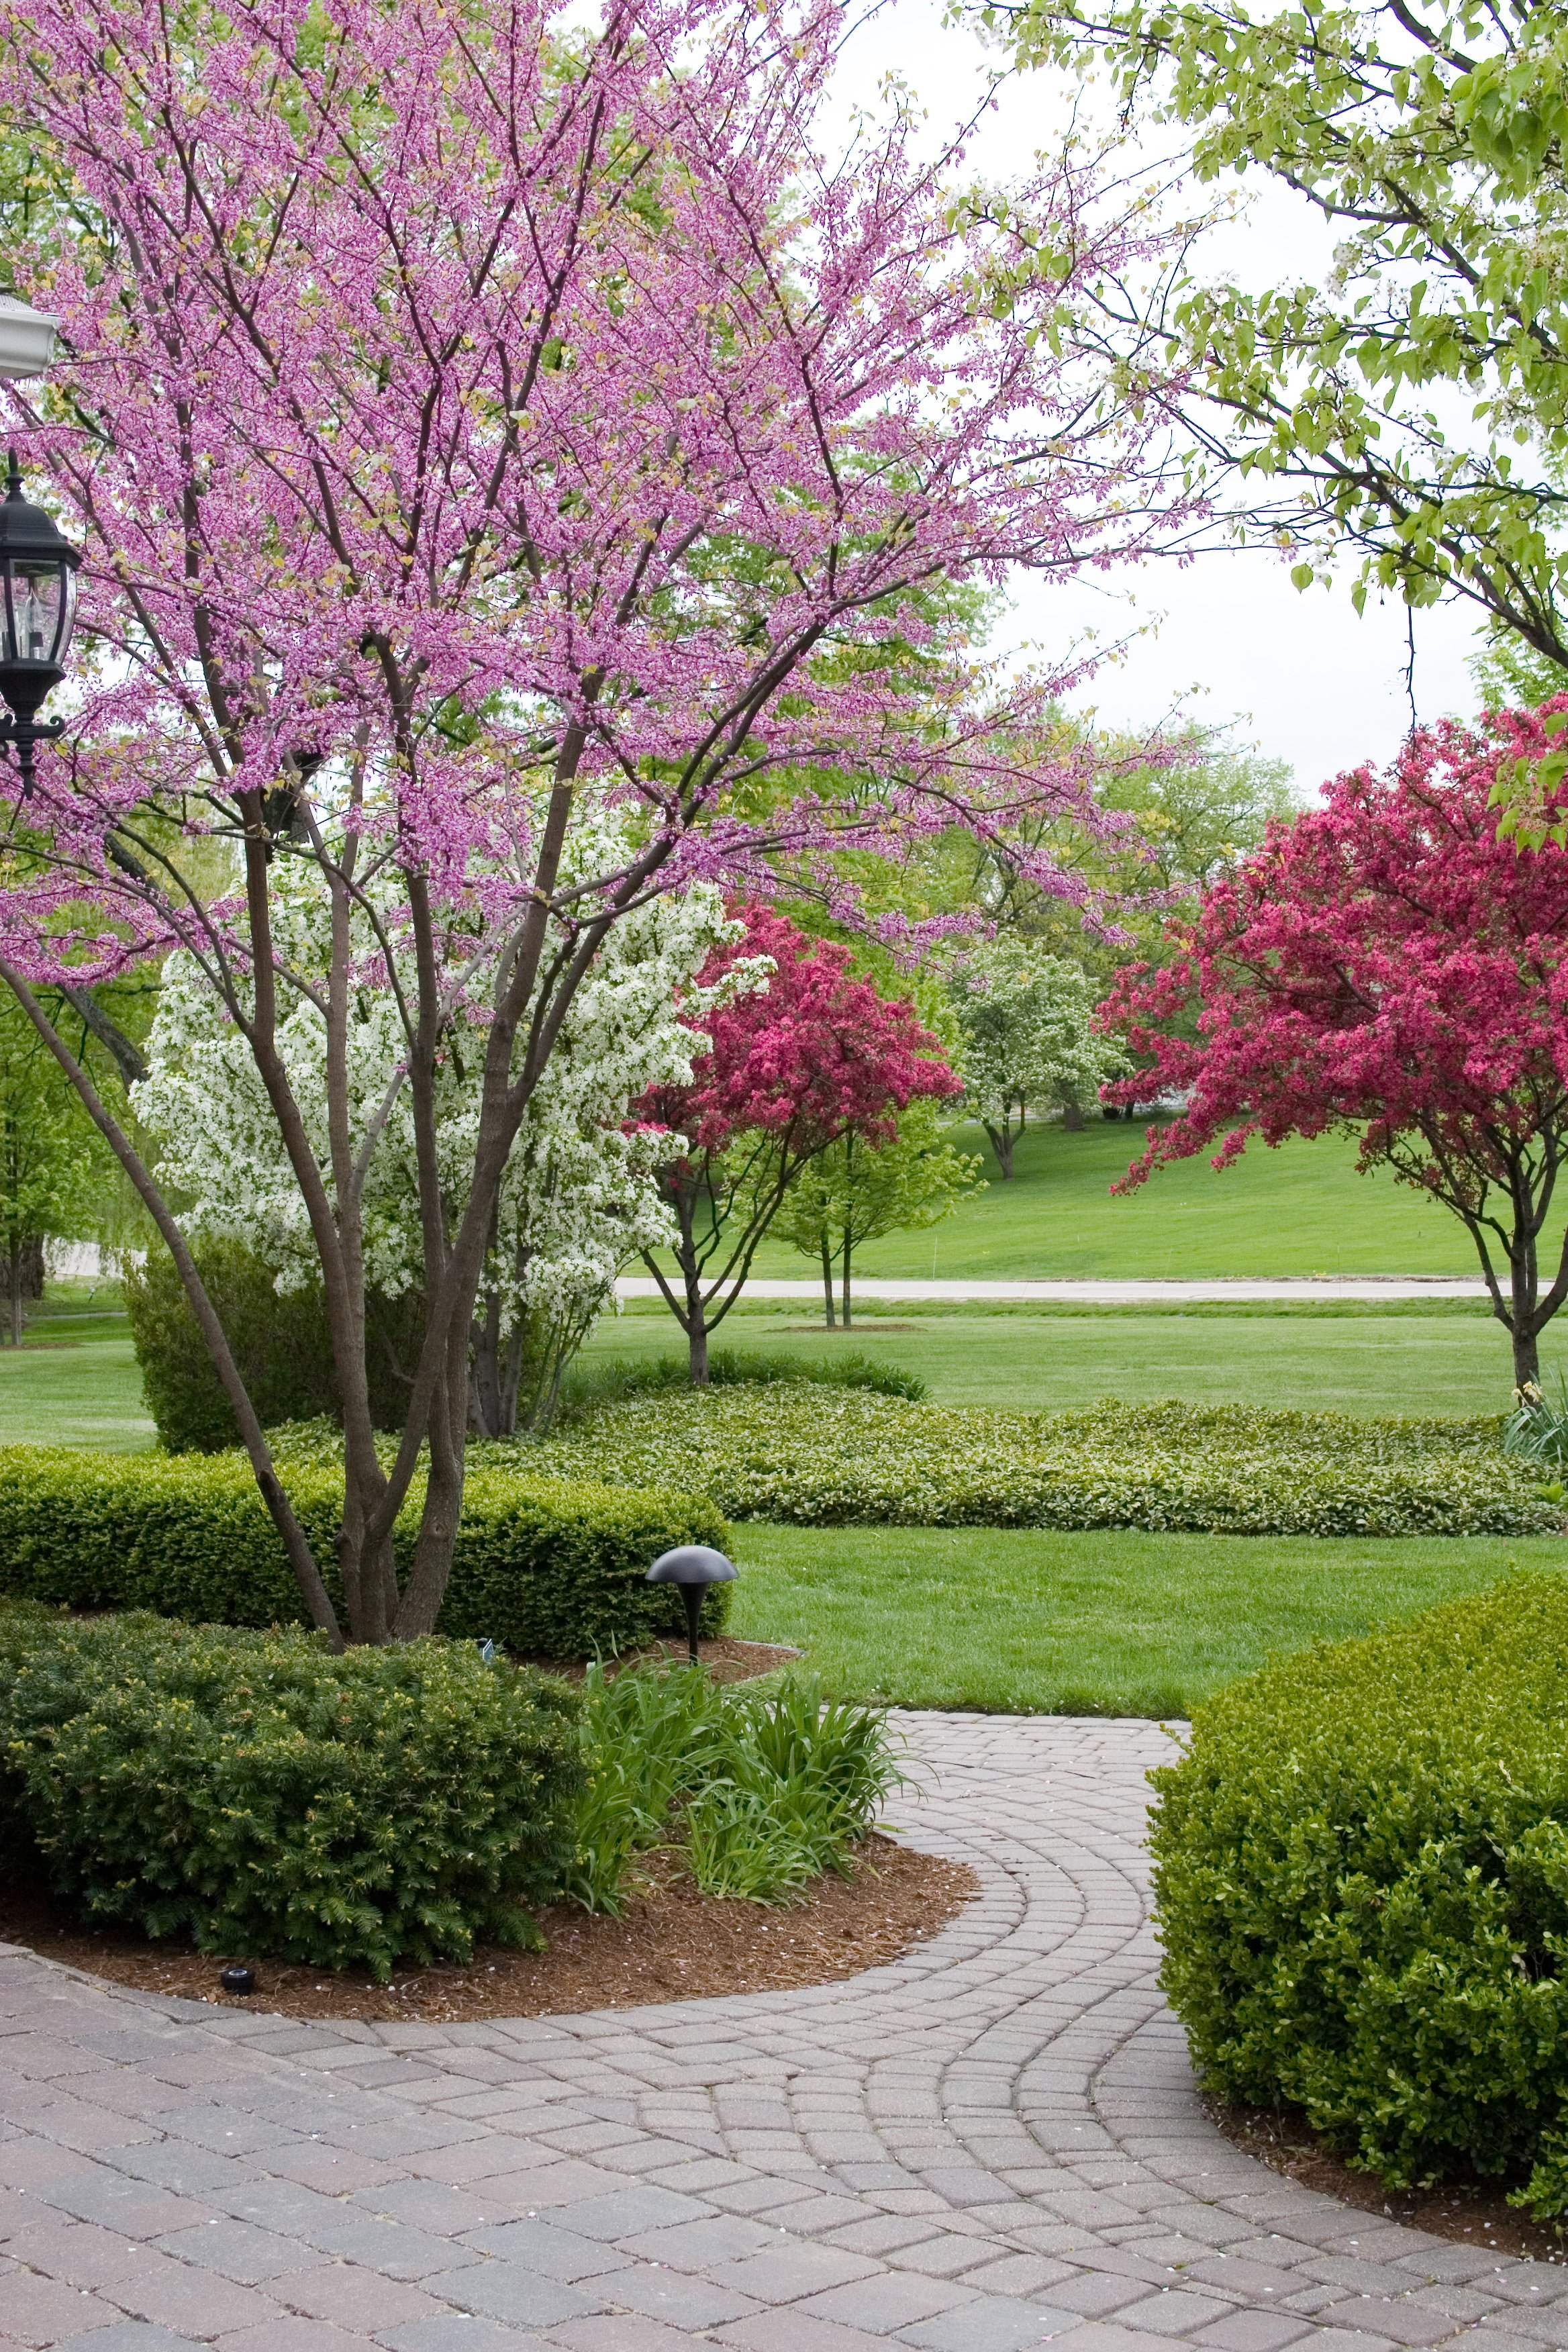 Image gallery ornamental trees for landscaping - Decorative small trees for landscaping ...